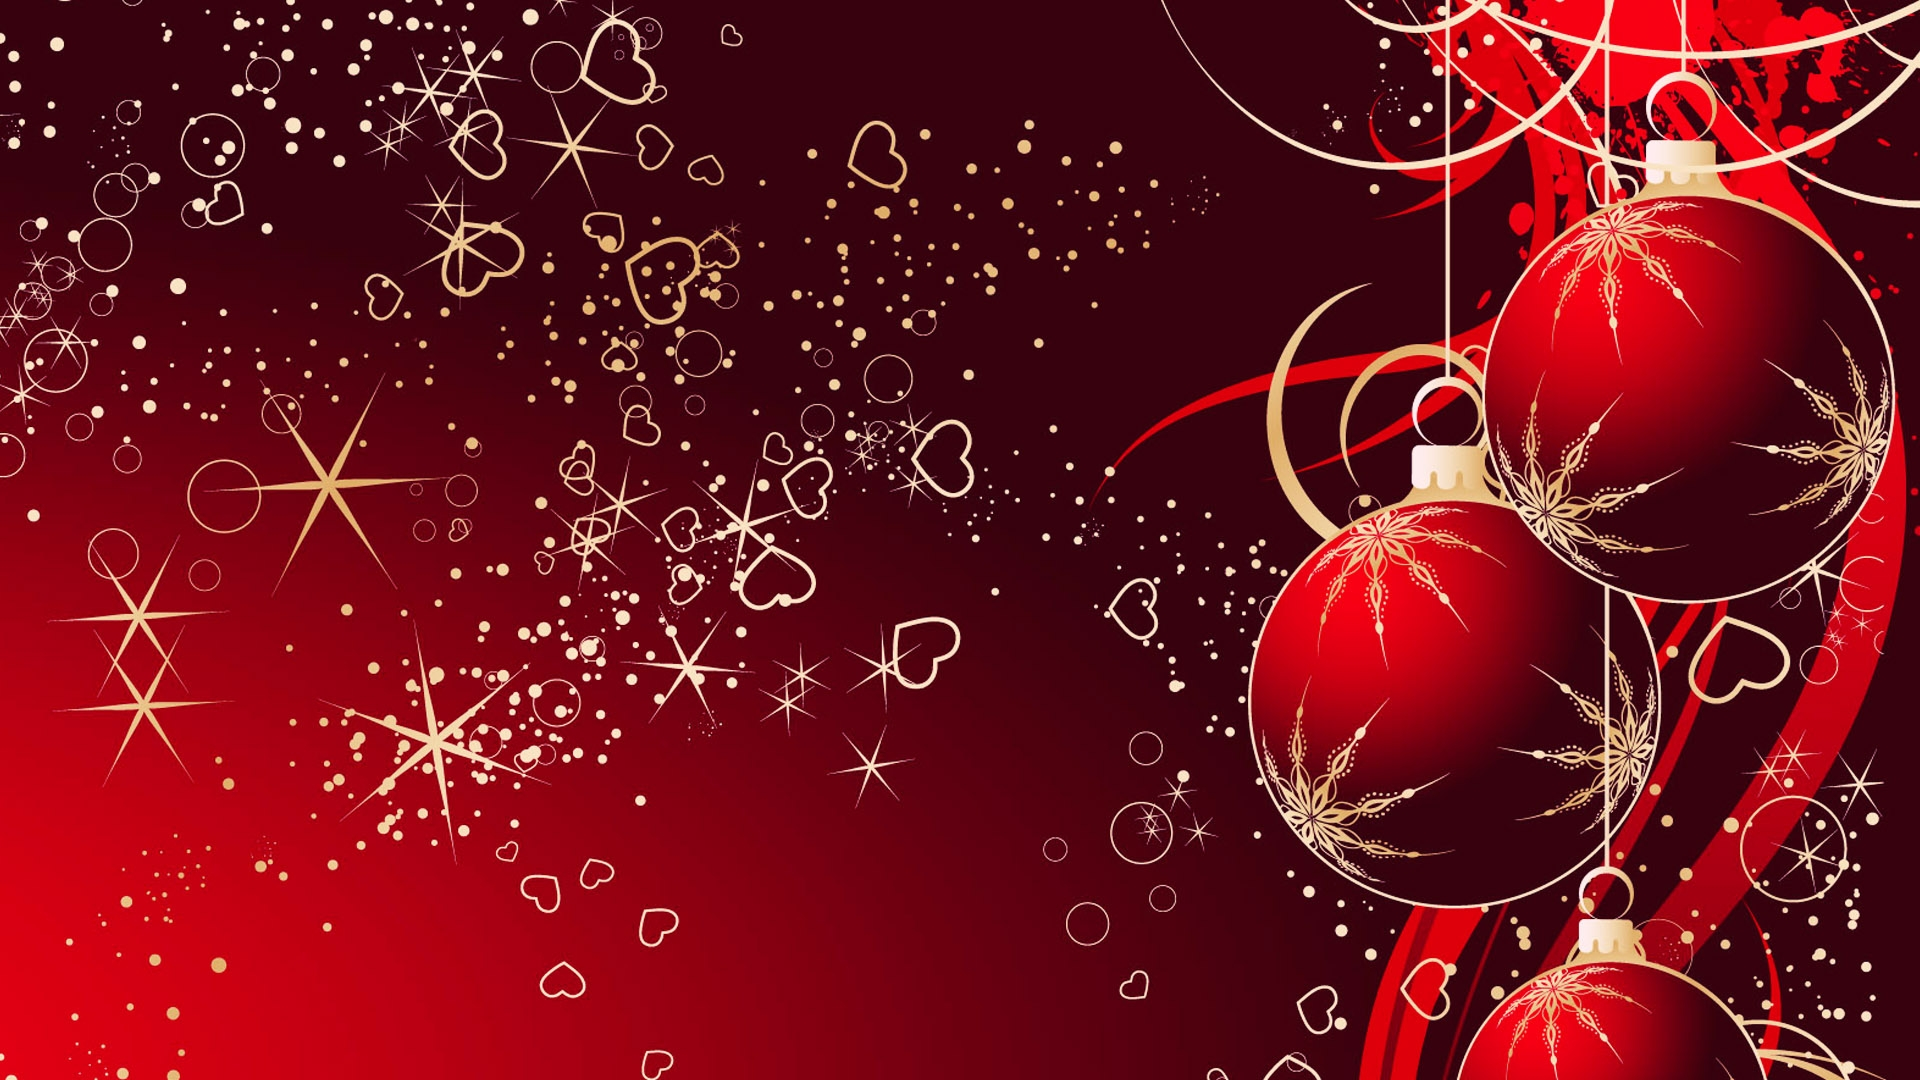 Christmas Wallpaper Wallpapers9 1920x1080